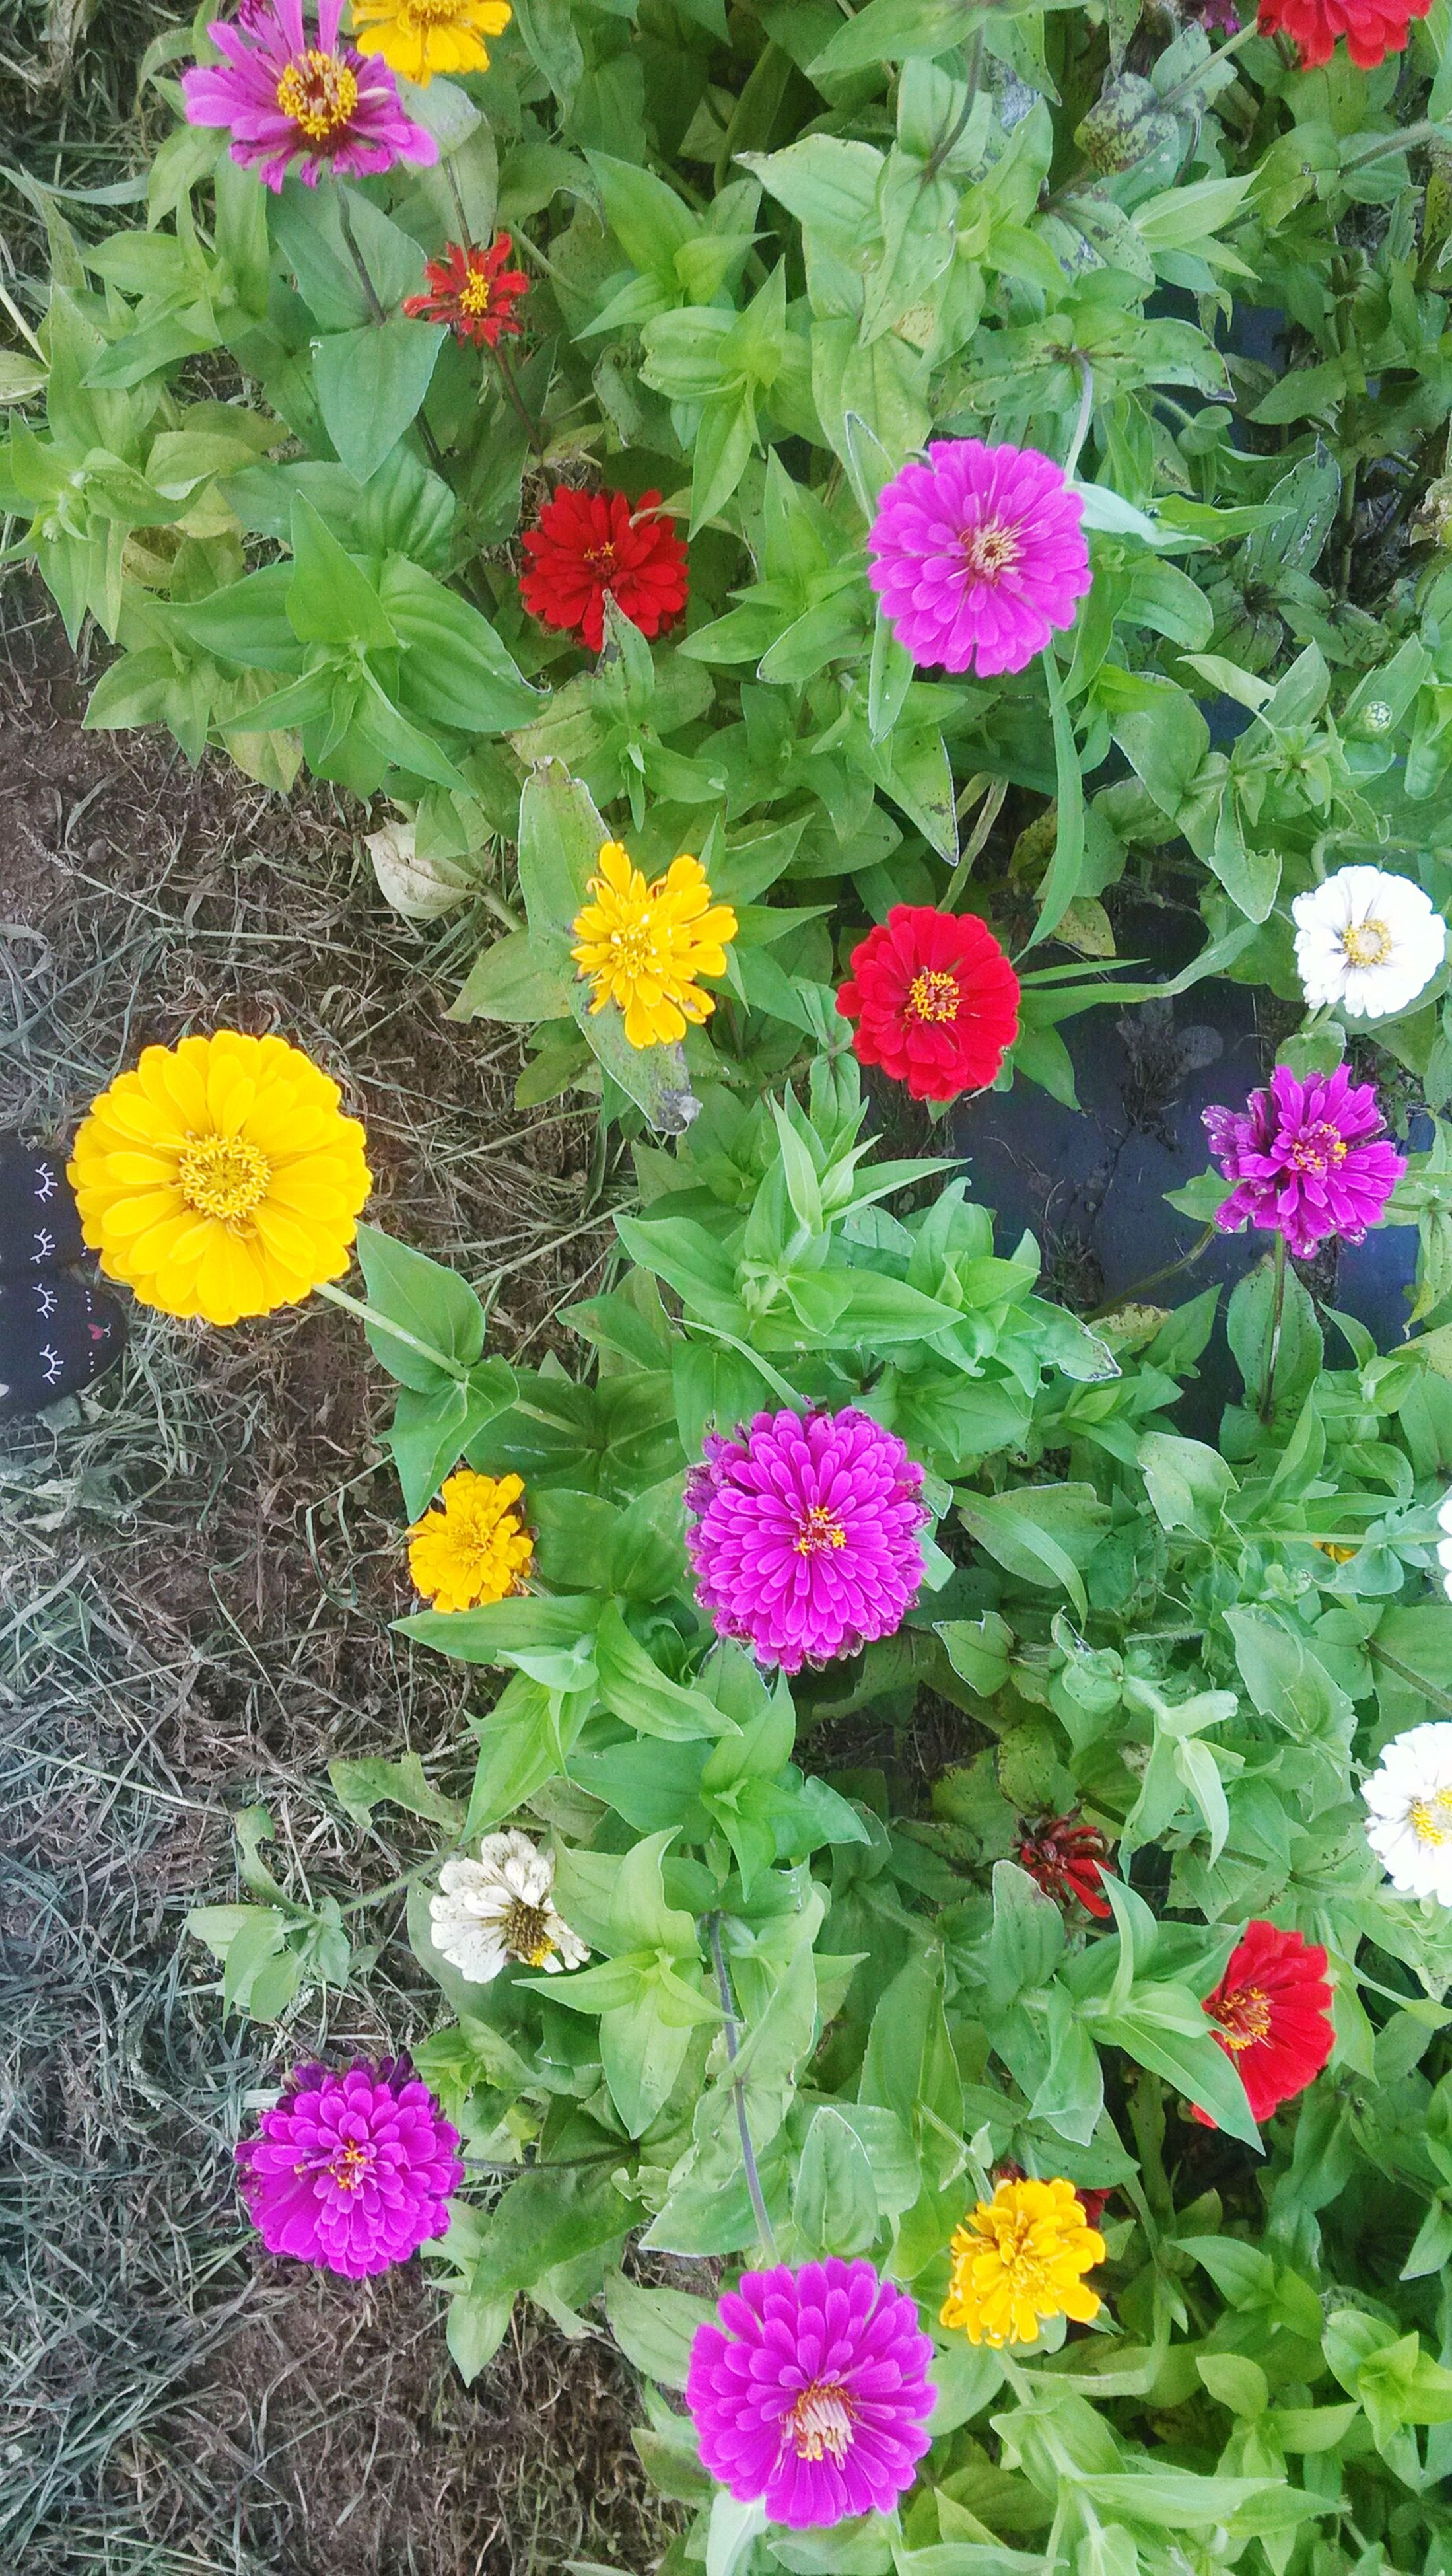 flower, freshness, growth, fragility, beauty in nature, petal, leaf, high angle view, plant, nature, green color, pink color, full frame, flower head, day, outdoors, multi colored, blossom, in bloom, blooming, springtime, botany, colorful, no people, formal garden, park, growing, tranquility, vibrant color